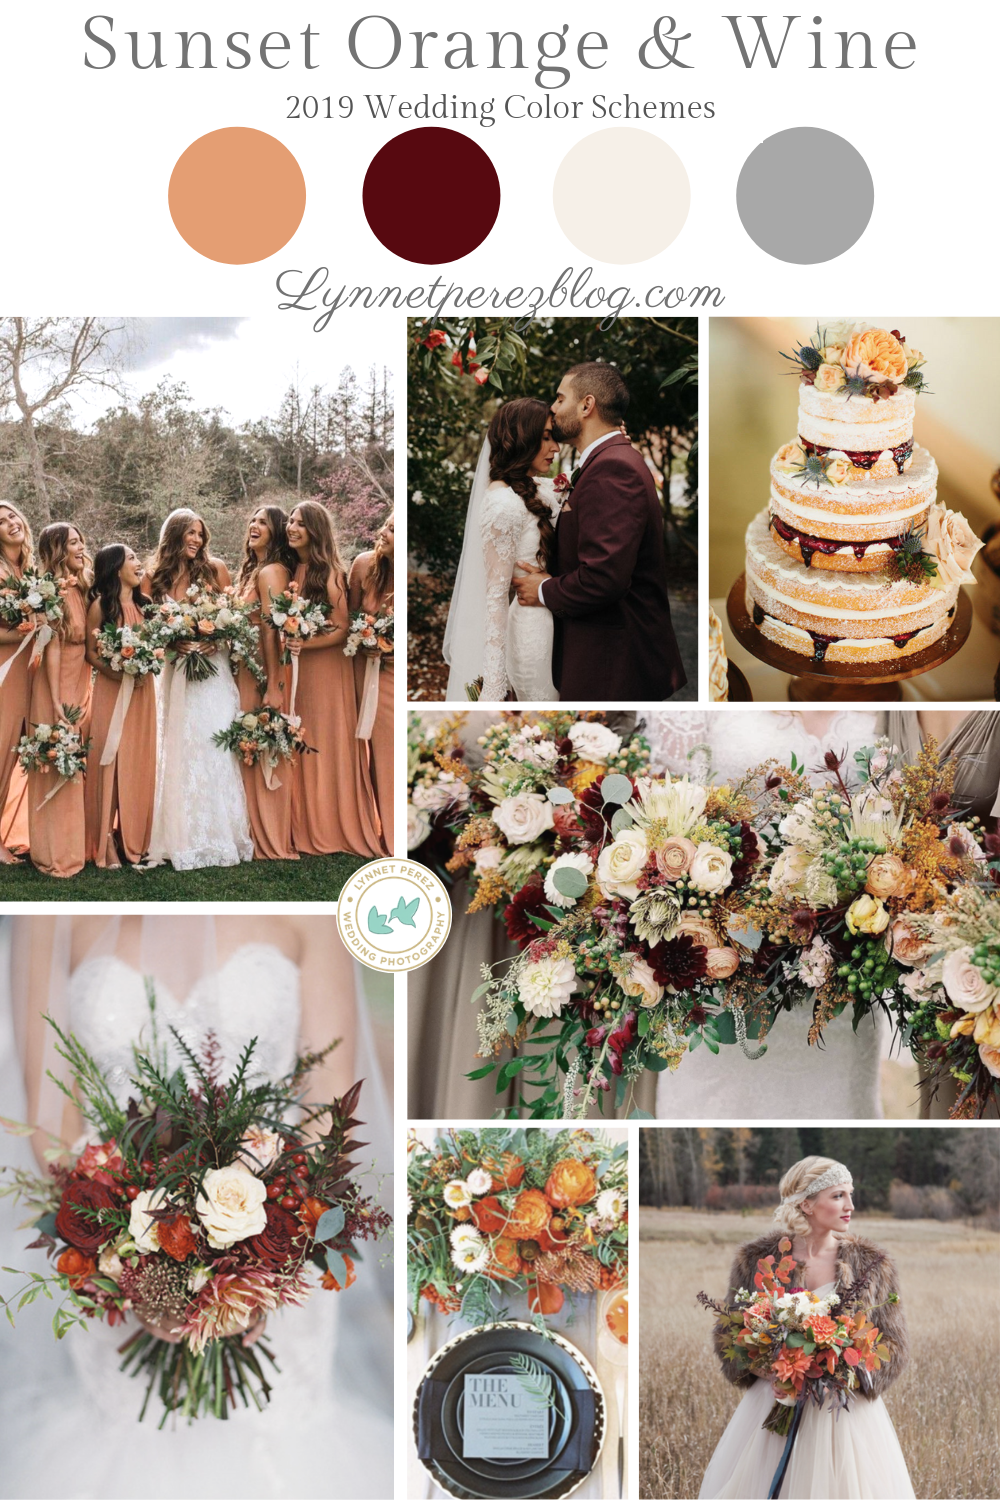 Brides Family Vermillion Burnt Orange Grooms Family Burgundy In 2020 Fall Wedding Color Schemes Wedding Colors Fall Wedding Colors